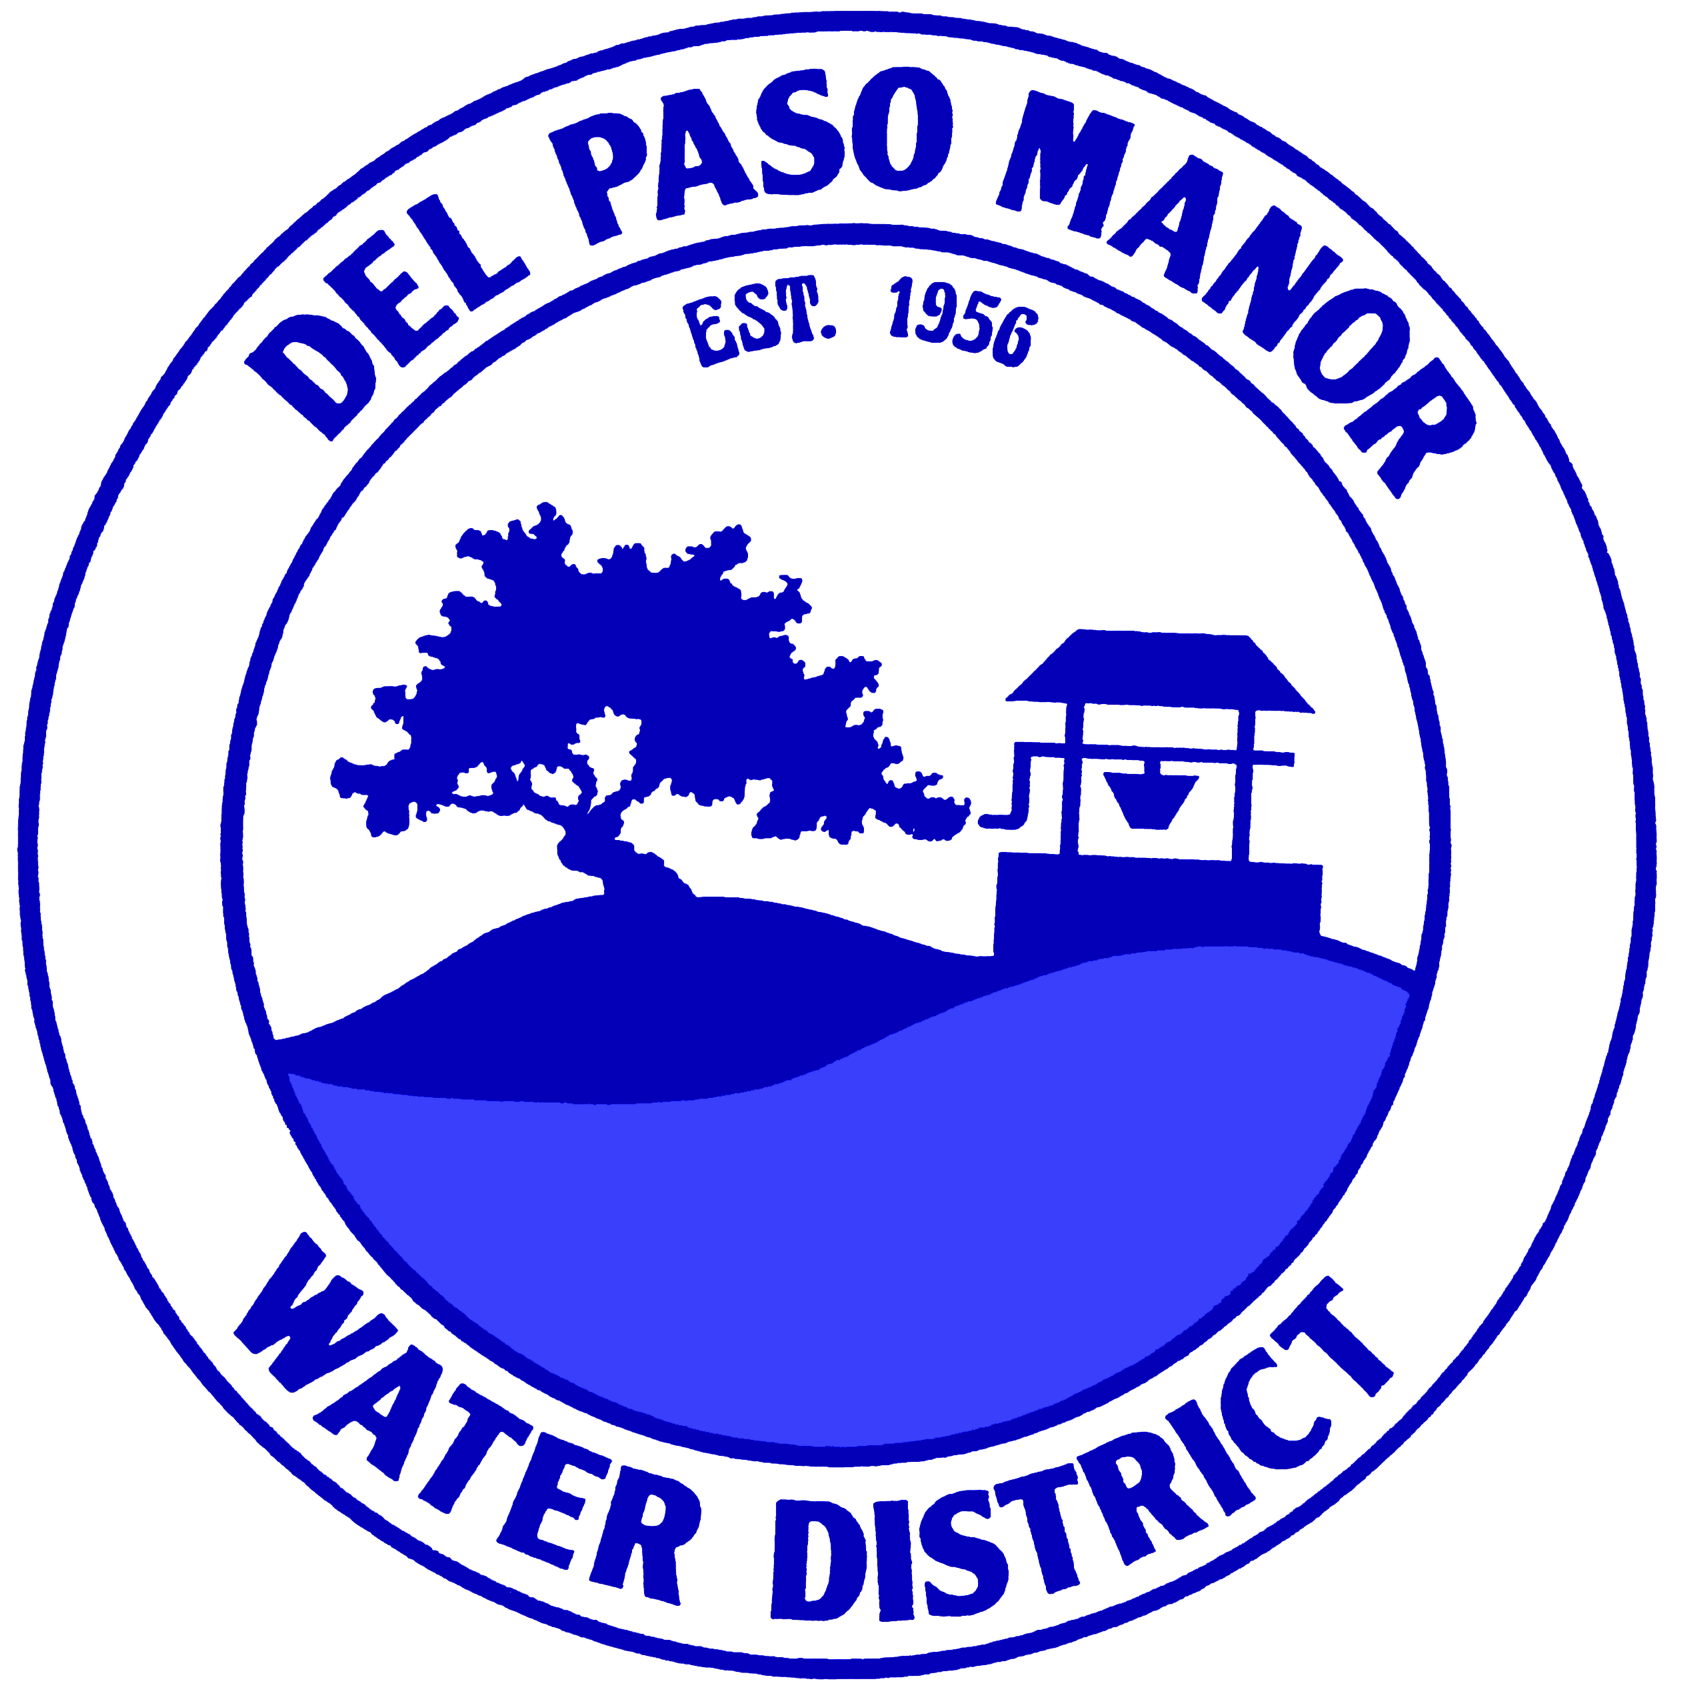 Del Paso Manor Water District